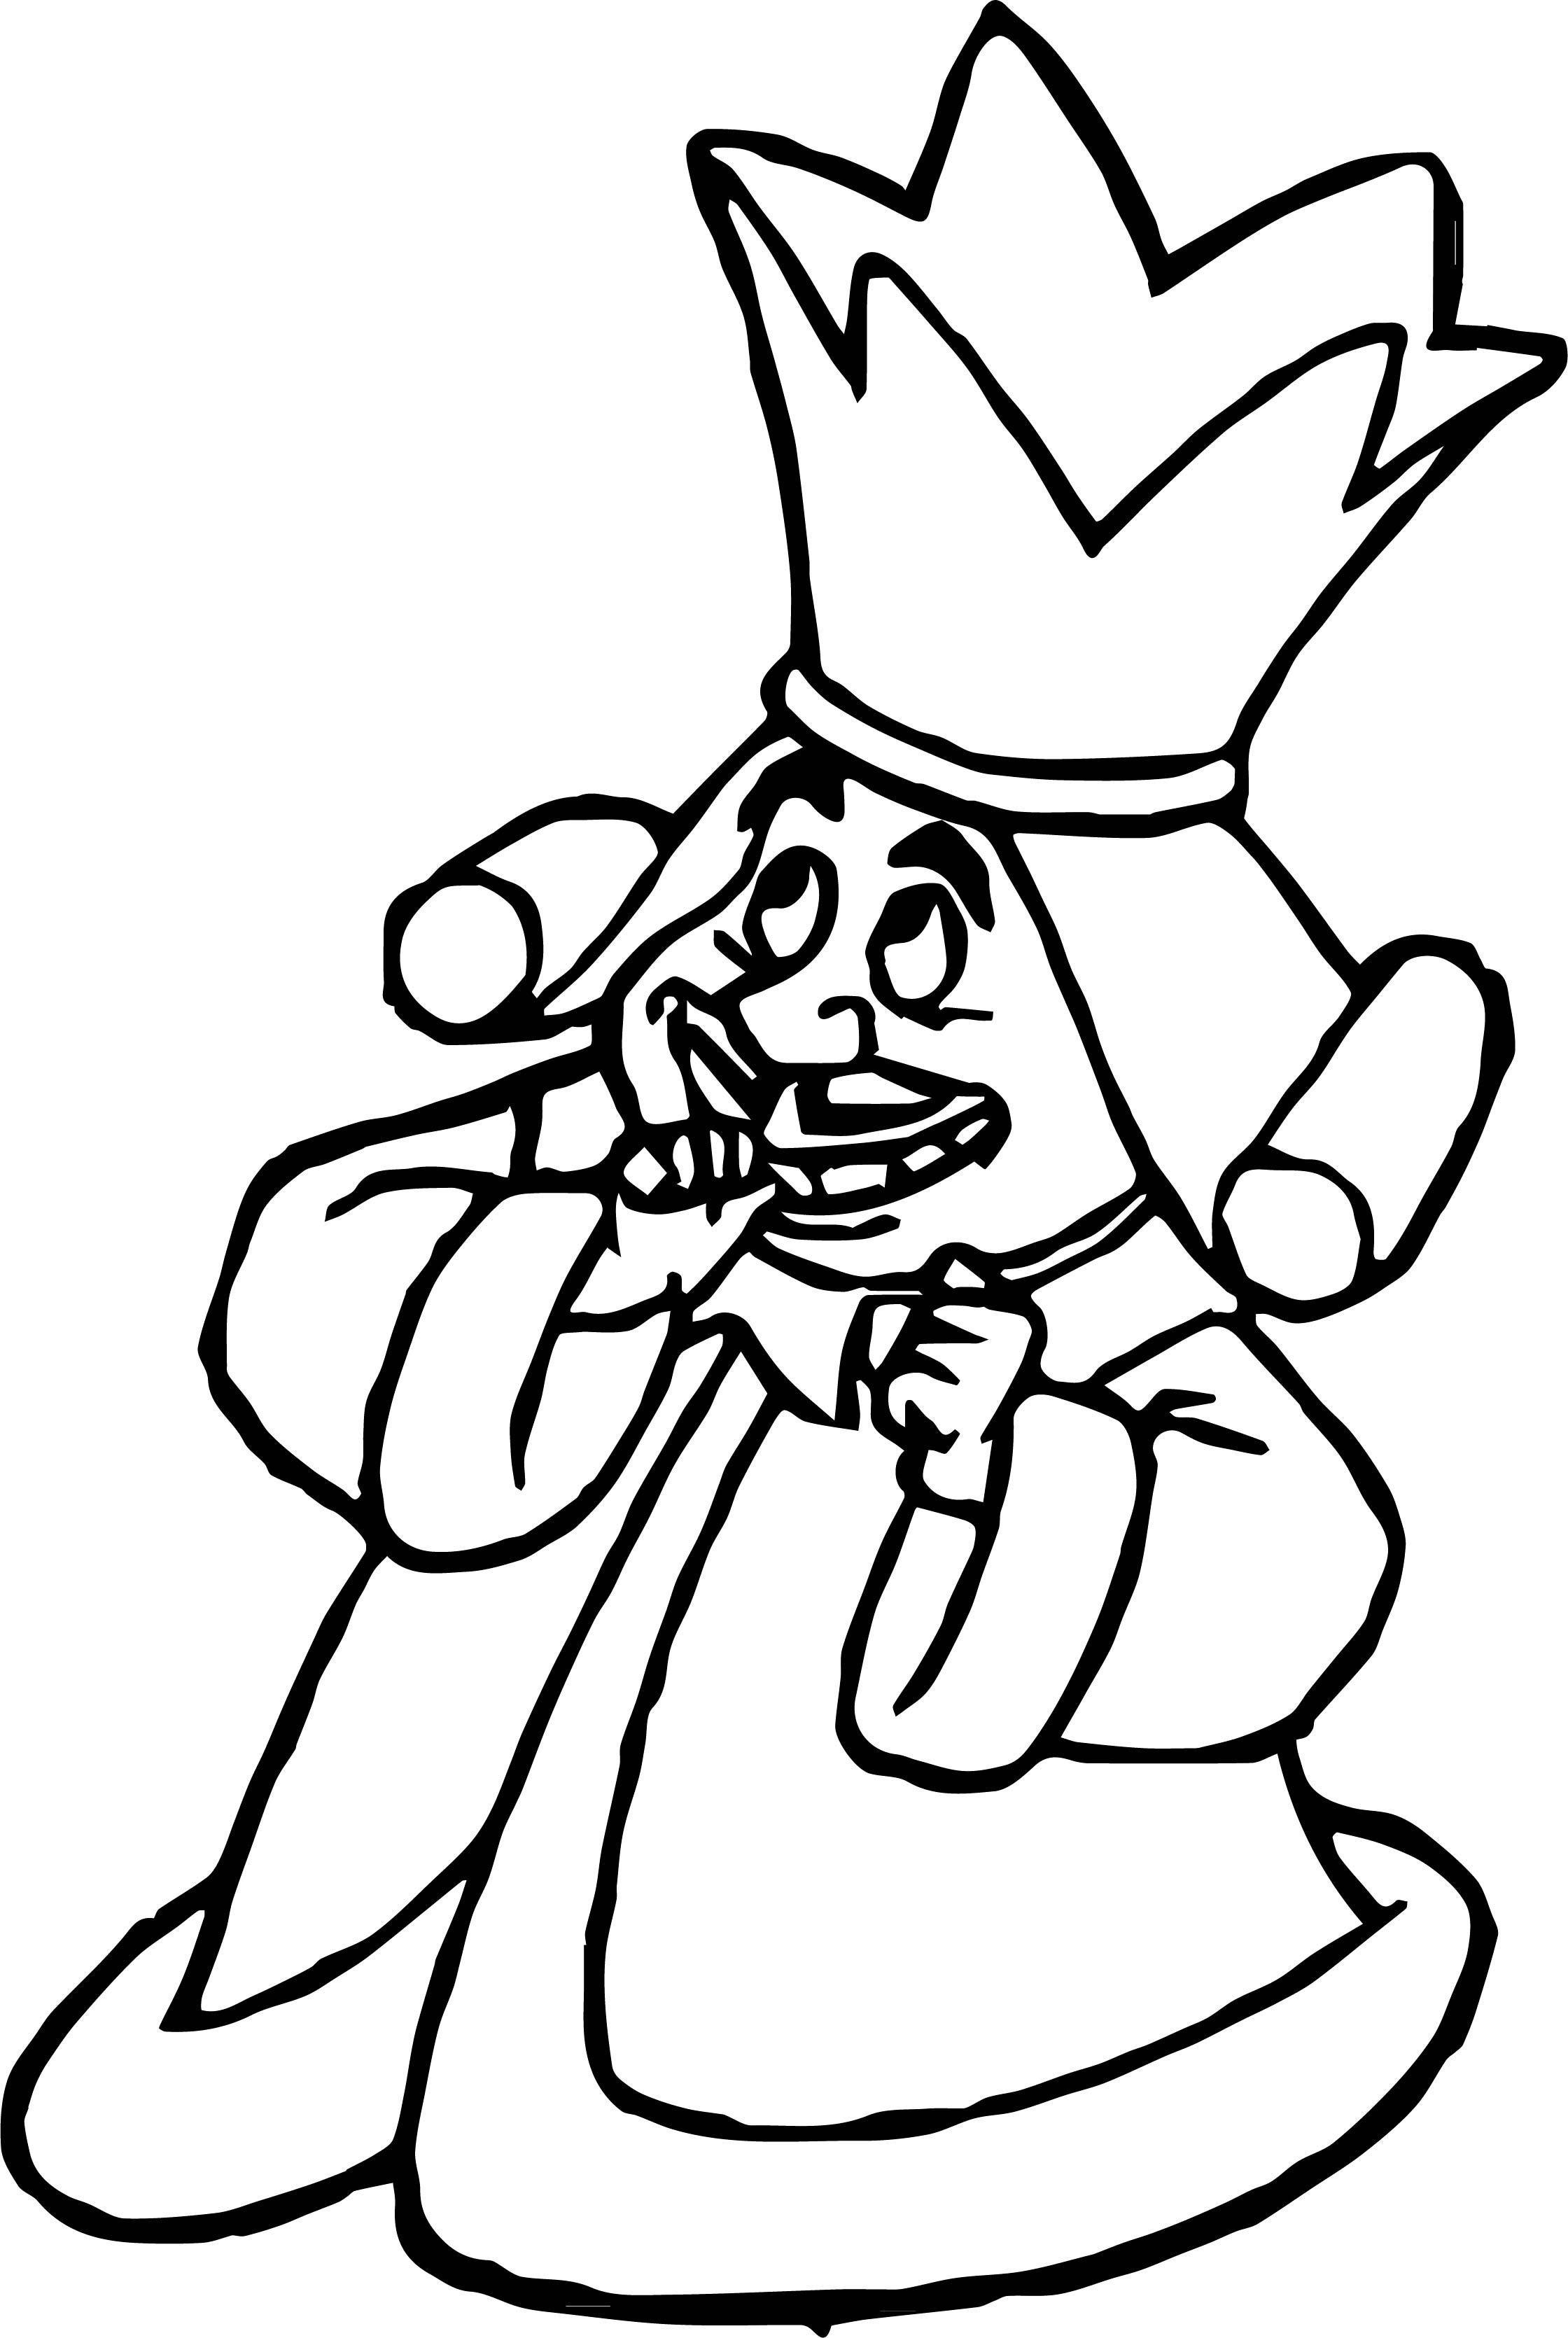 Coloring Pages King : Alice in the wonderland small king coloring page